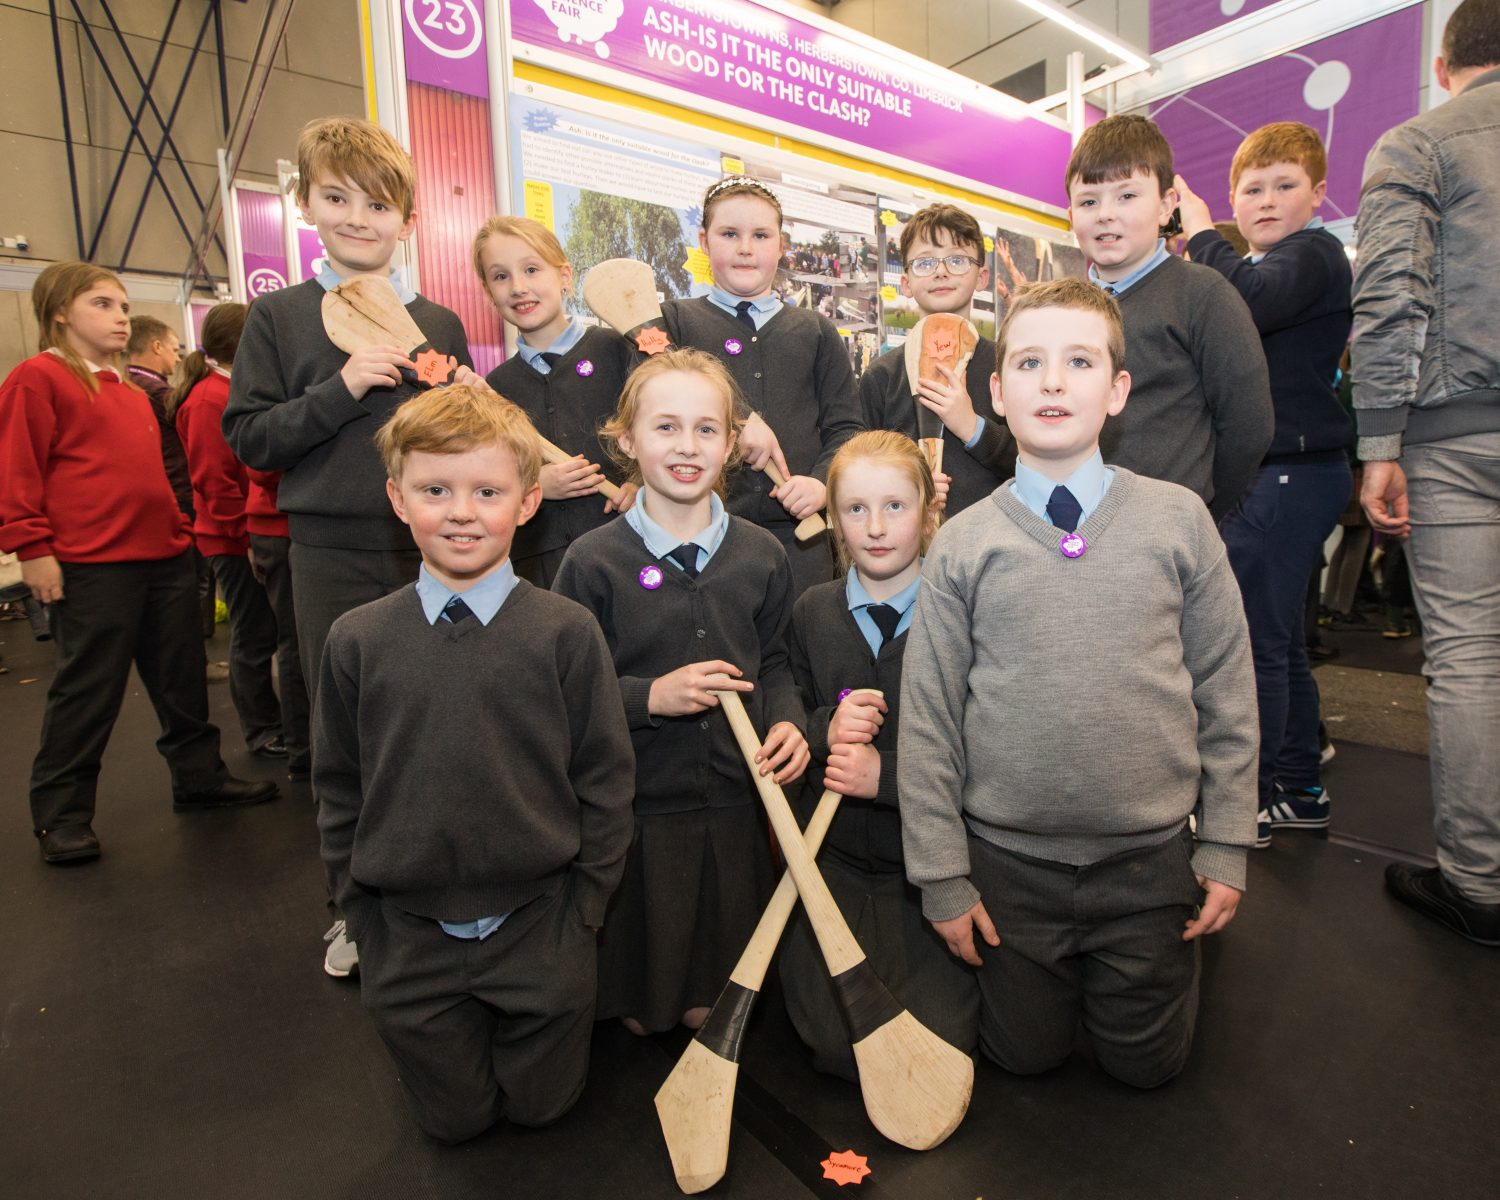 Herberstown NS, Herberstown, Co. Limerick at this years RDS Primary Science Fair Limerick which will see over 3000 primary school students from all over the country exhibit theirSTEM investigations at Mary Immaculate College. Between the three venues of Limerick, Dublin and Belfast there will be over 7000 participants in 2018. Photo: Oisin McHugh True Media